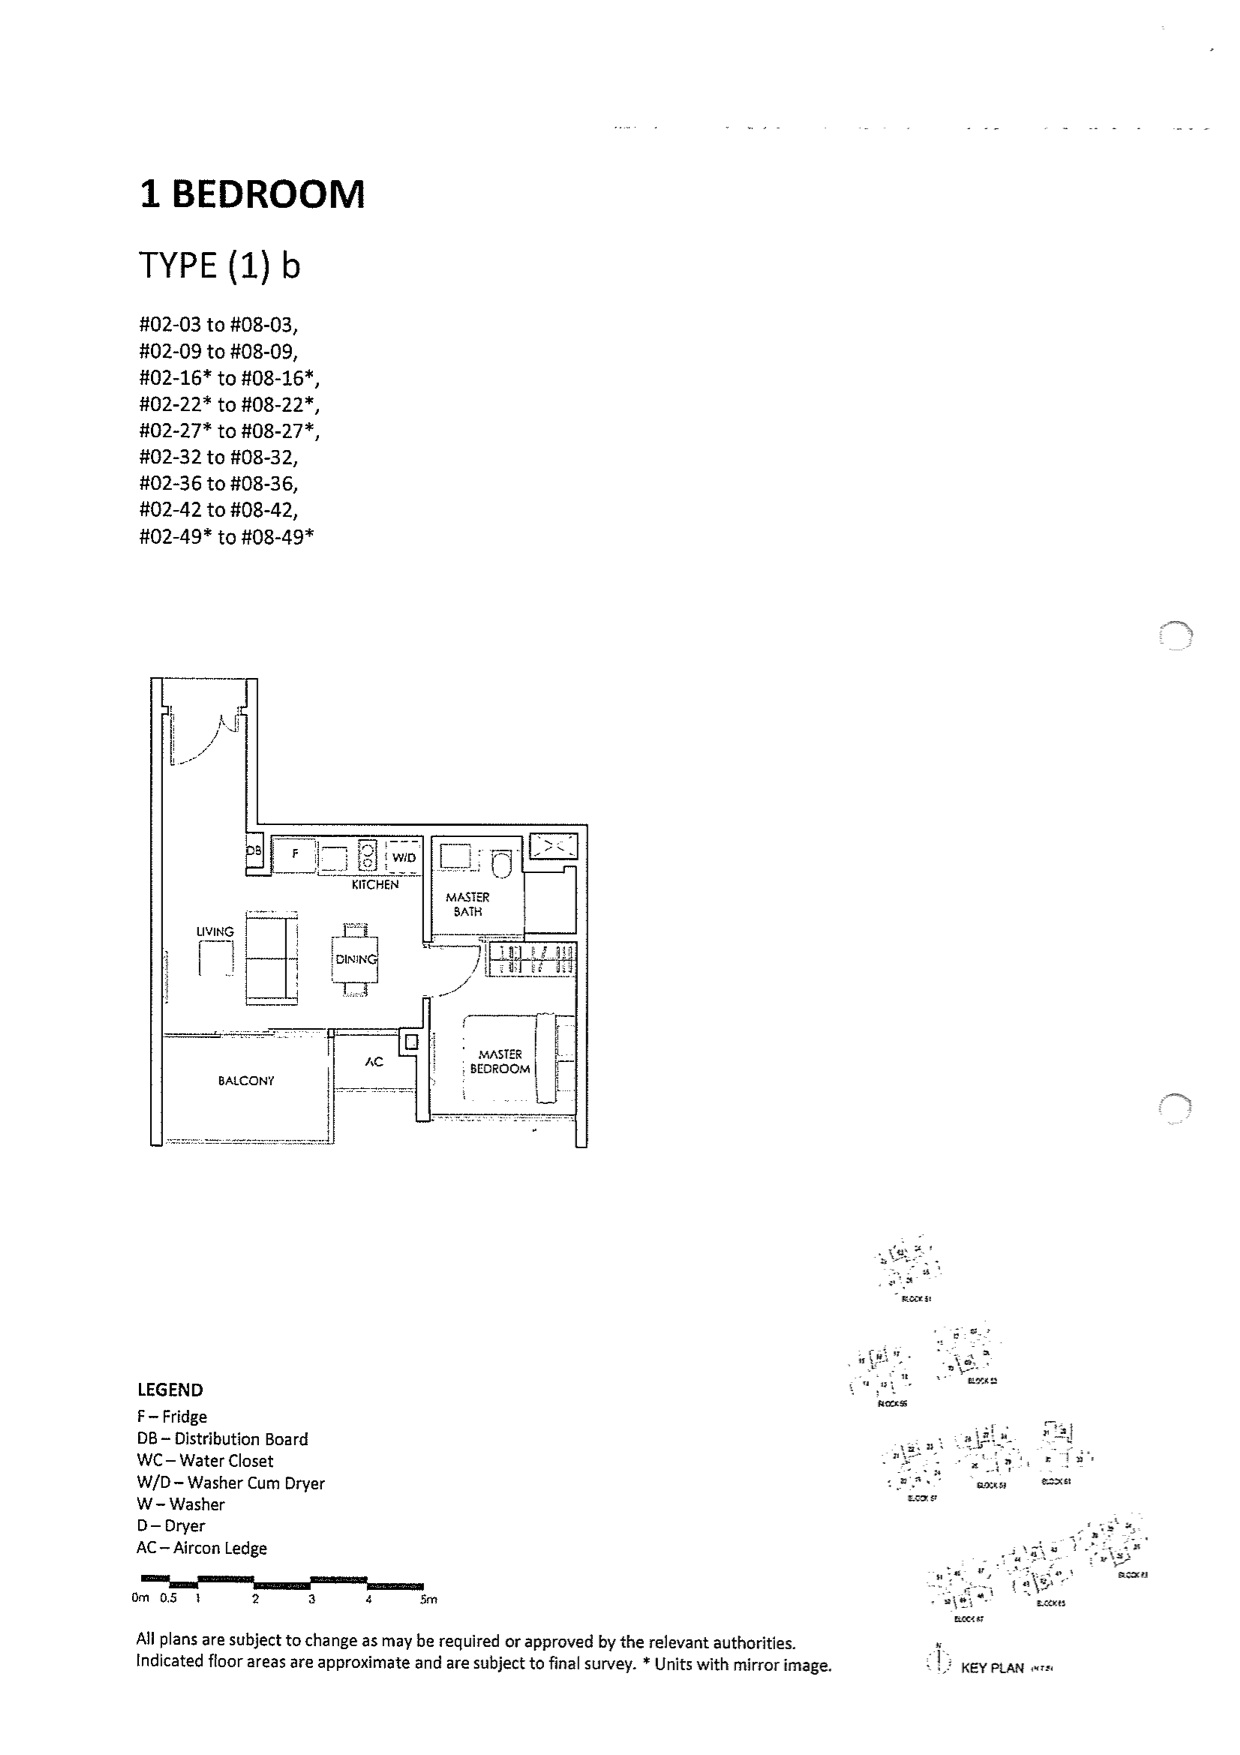 The Inflora Condo Layout Plans 1 Bedroom Type (1)b